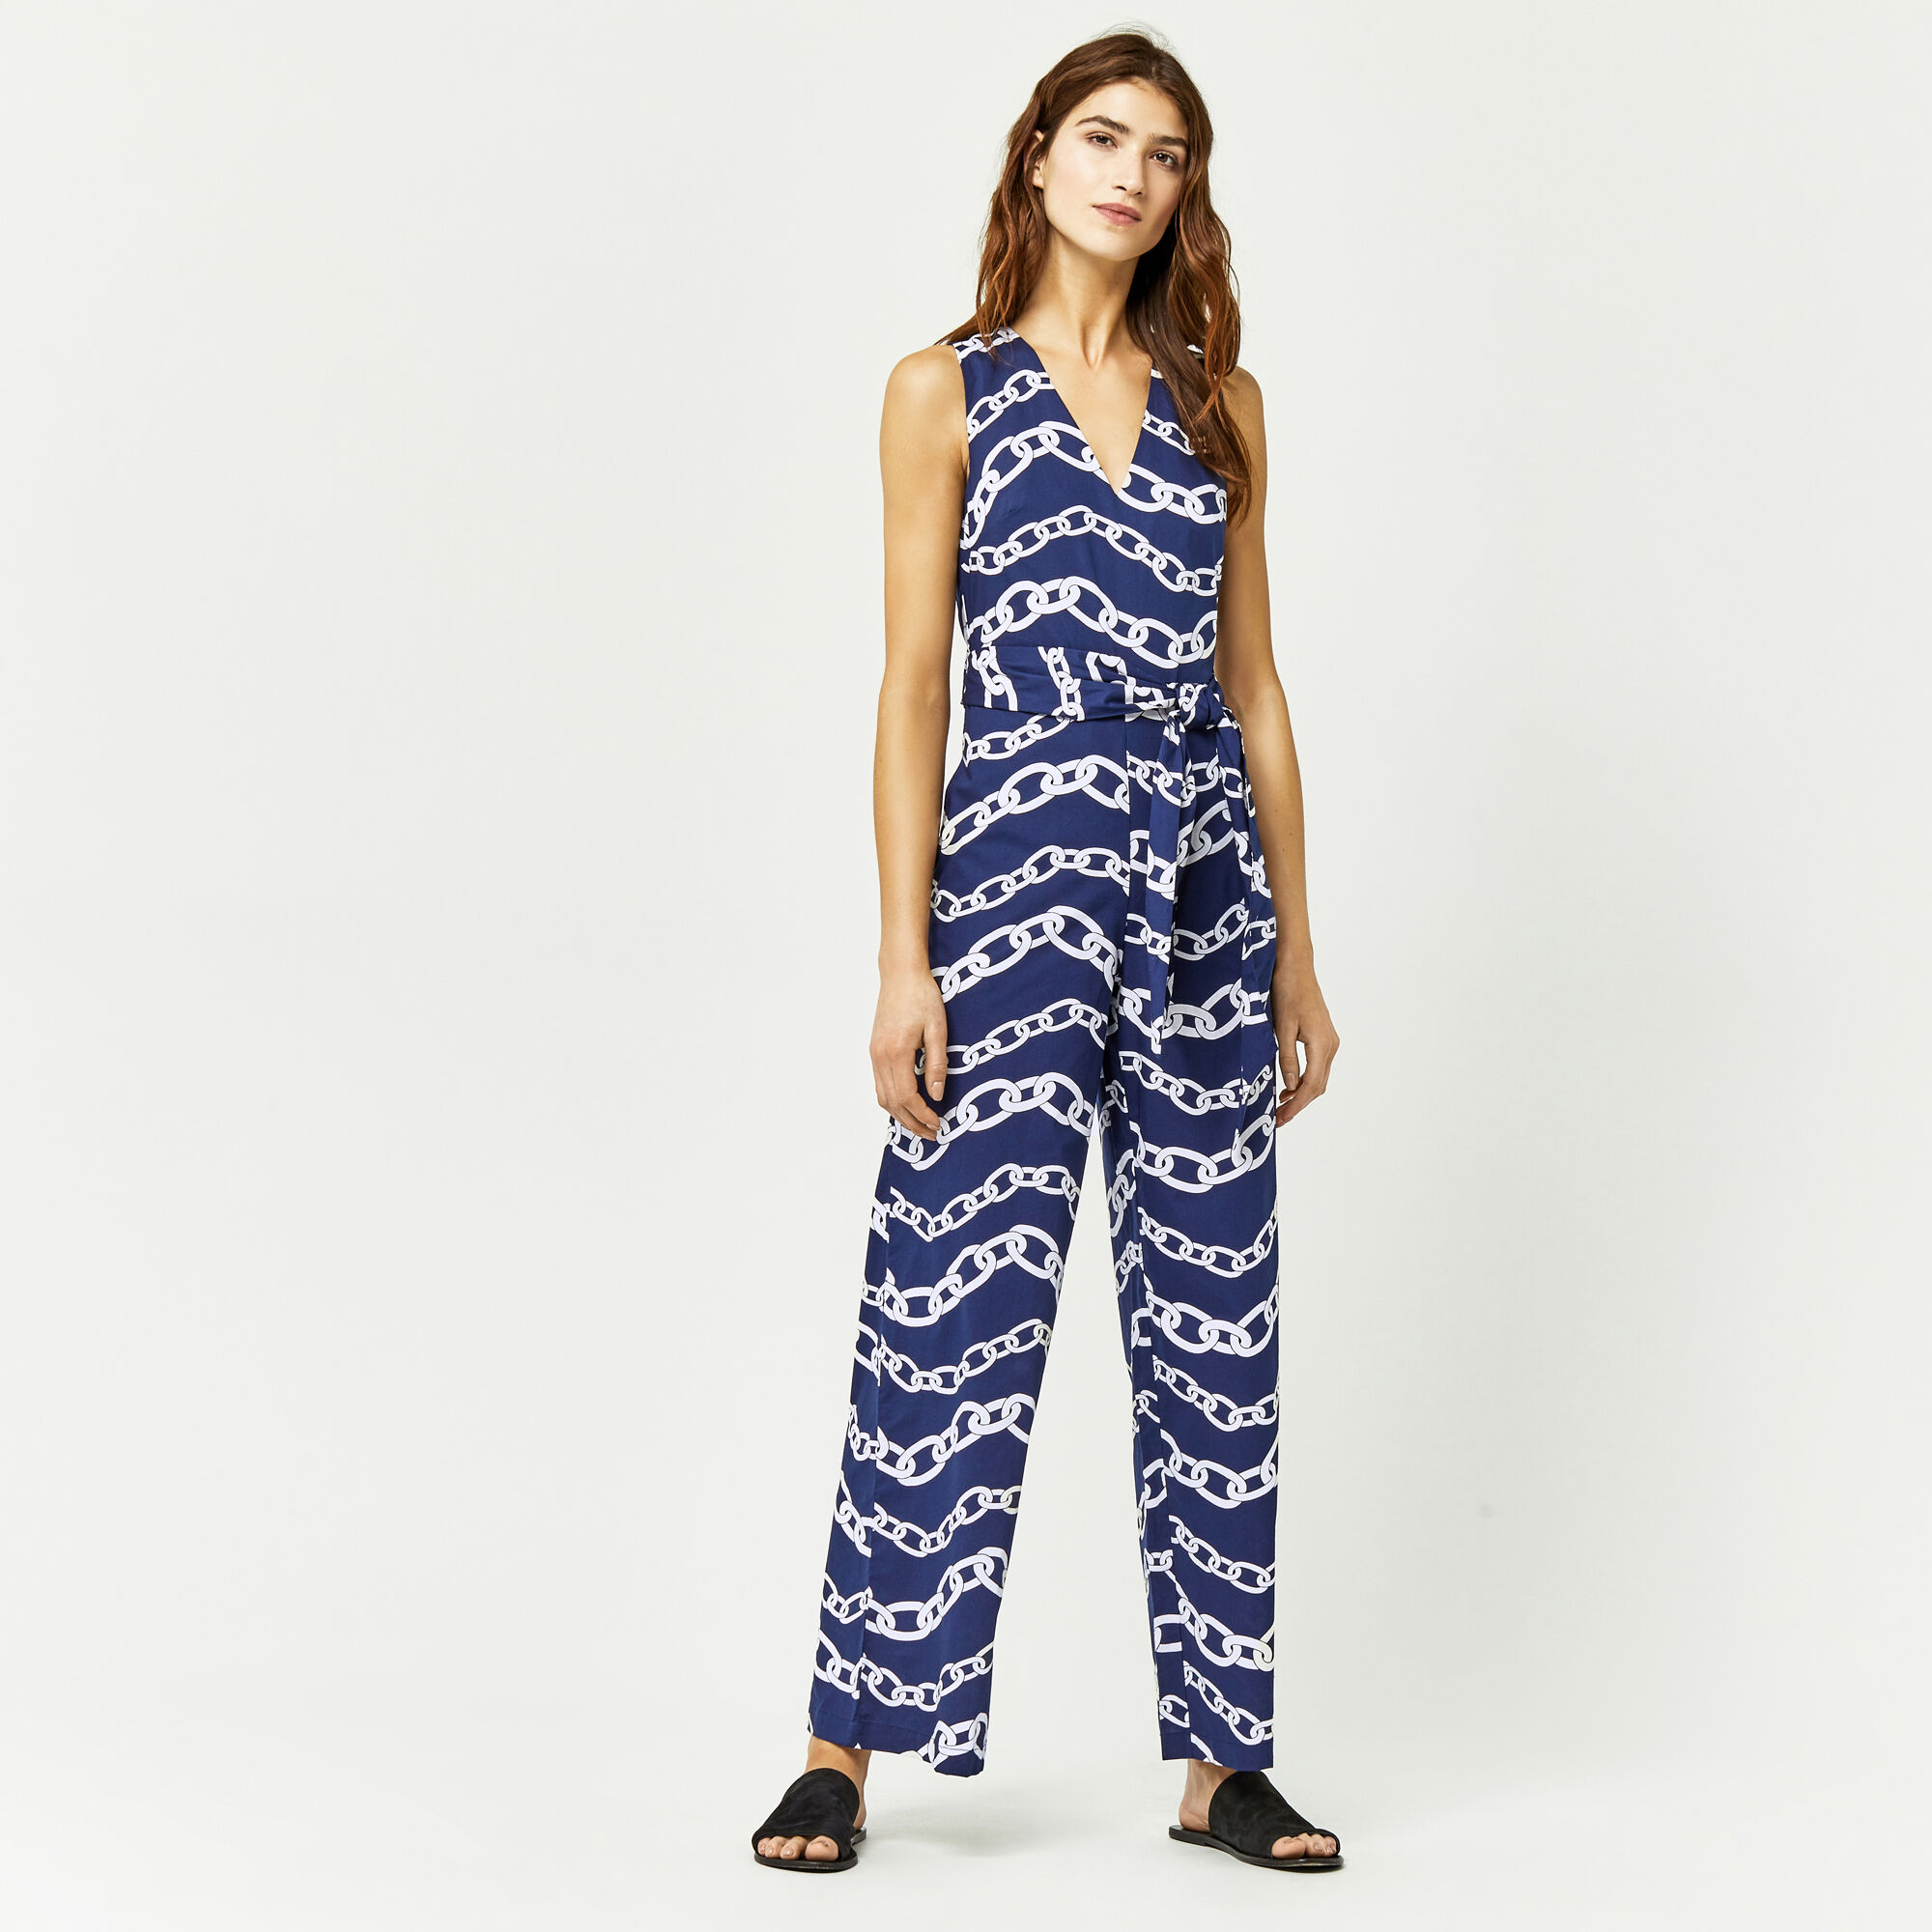 Your style inspiration starts with this distinctive assortment of printed jumpsuits. Let your mind be free and outfit look perfect. Update your look with something new from brands like Ramy Brook, Otto d'ame, Citrine Swim, See By Chloe Clothing, Pret-a-Surf, and Saloni.